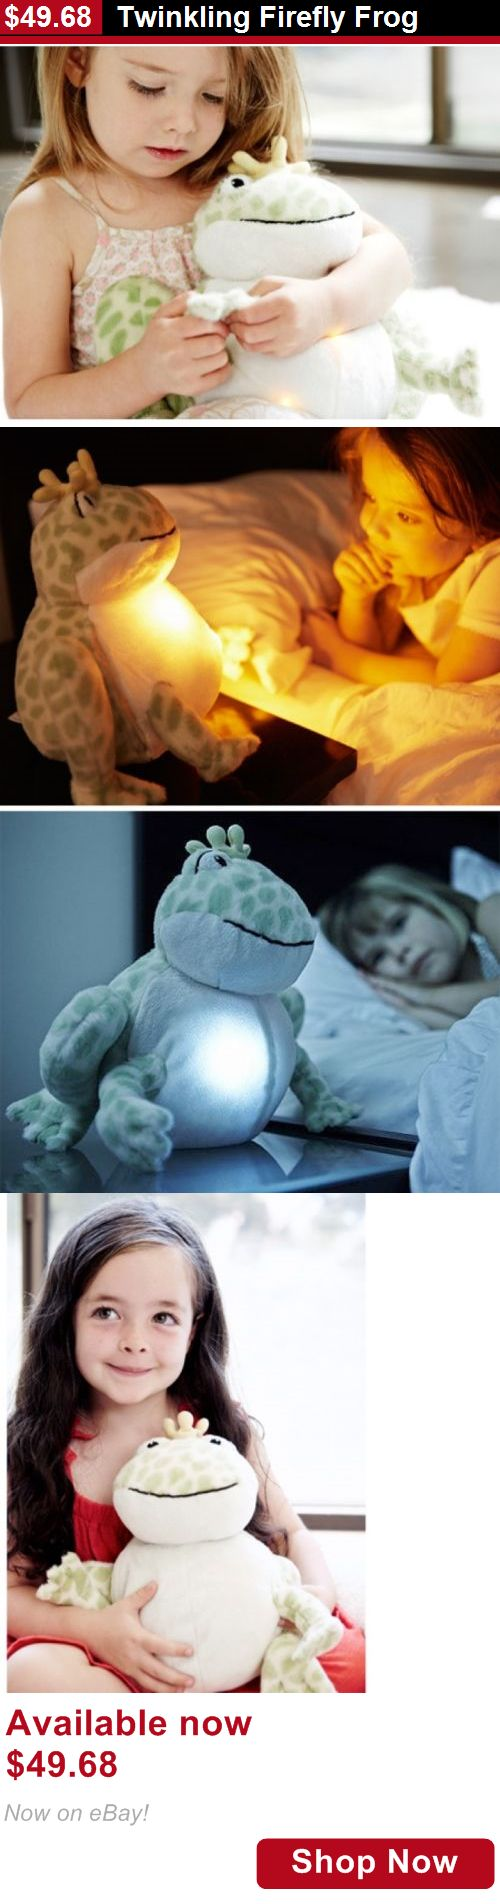 Other Toys for Baby: Twinkling Firefly Frog BUY IT NOW ONLY: $49.68